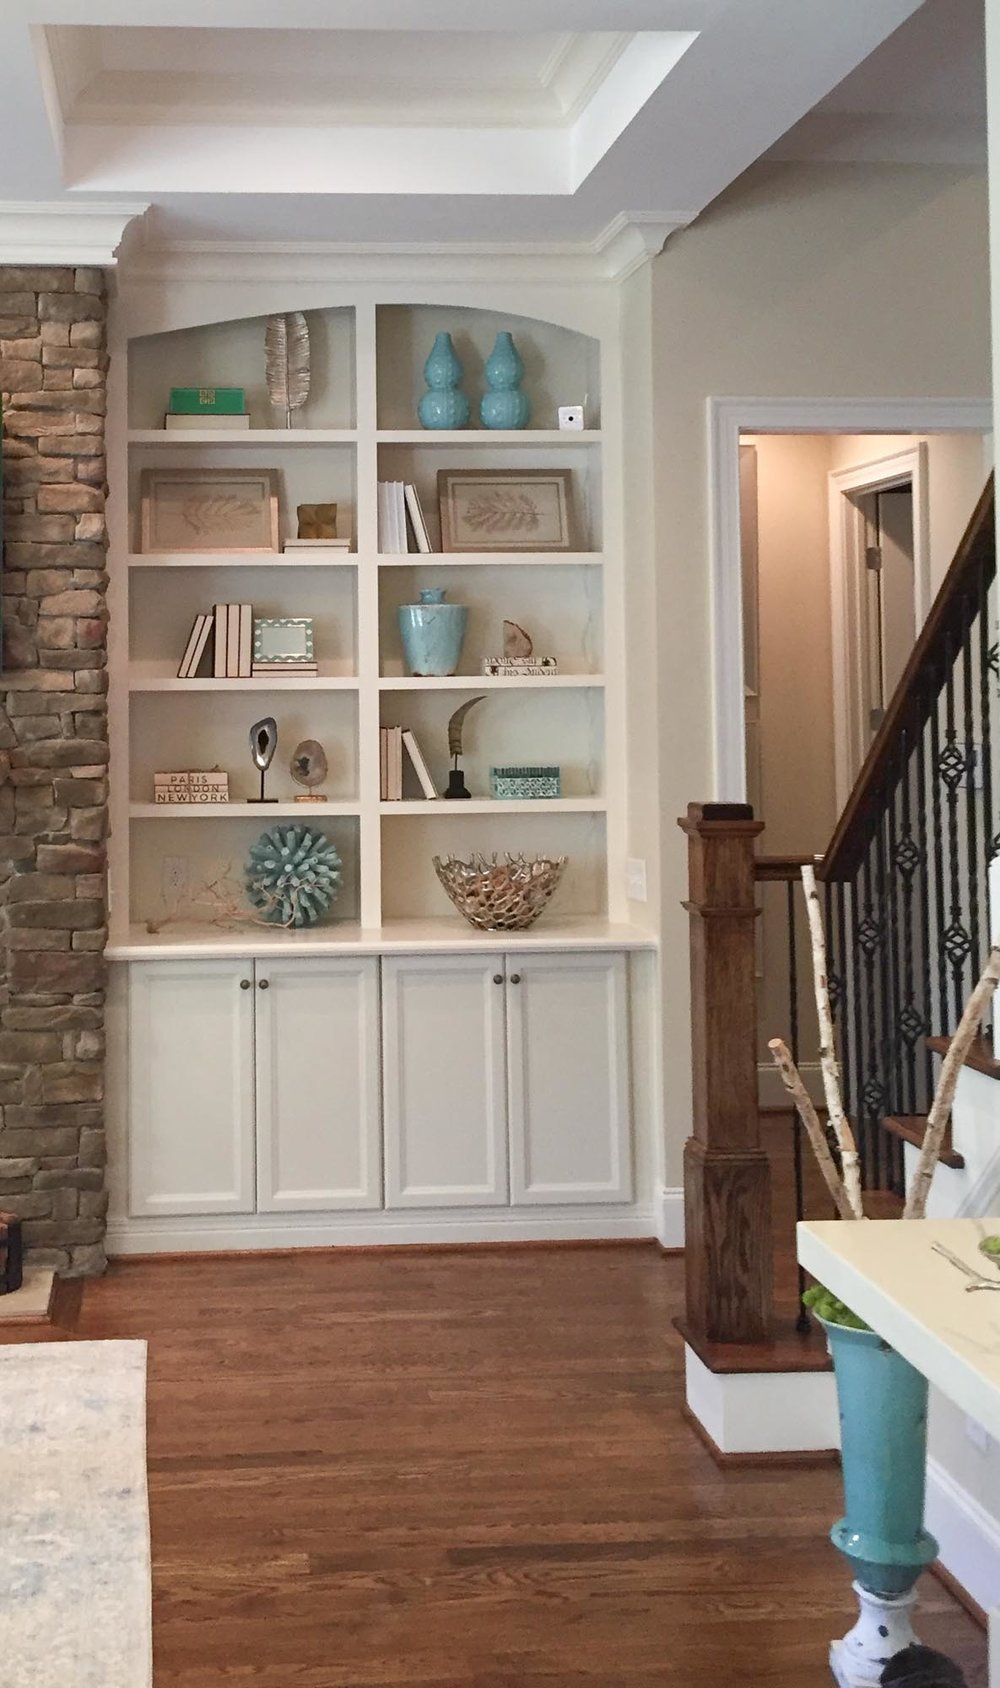 Bookcase with a mix of blue and beige accessories